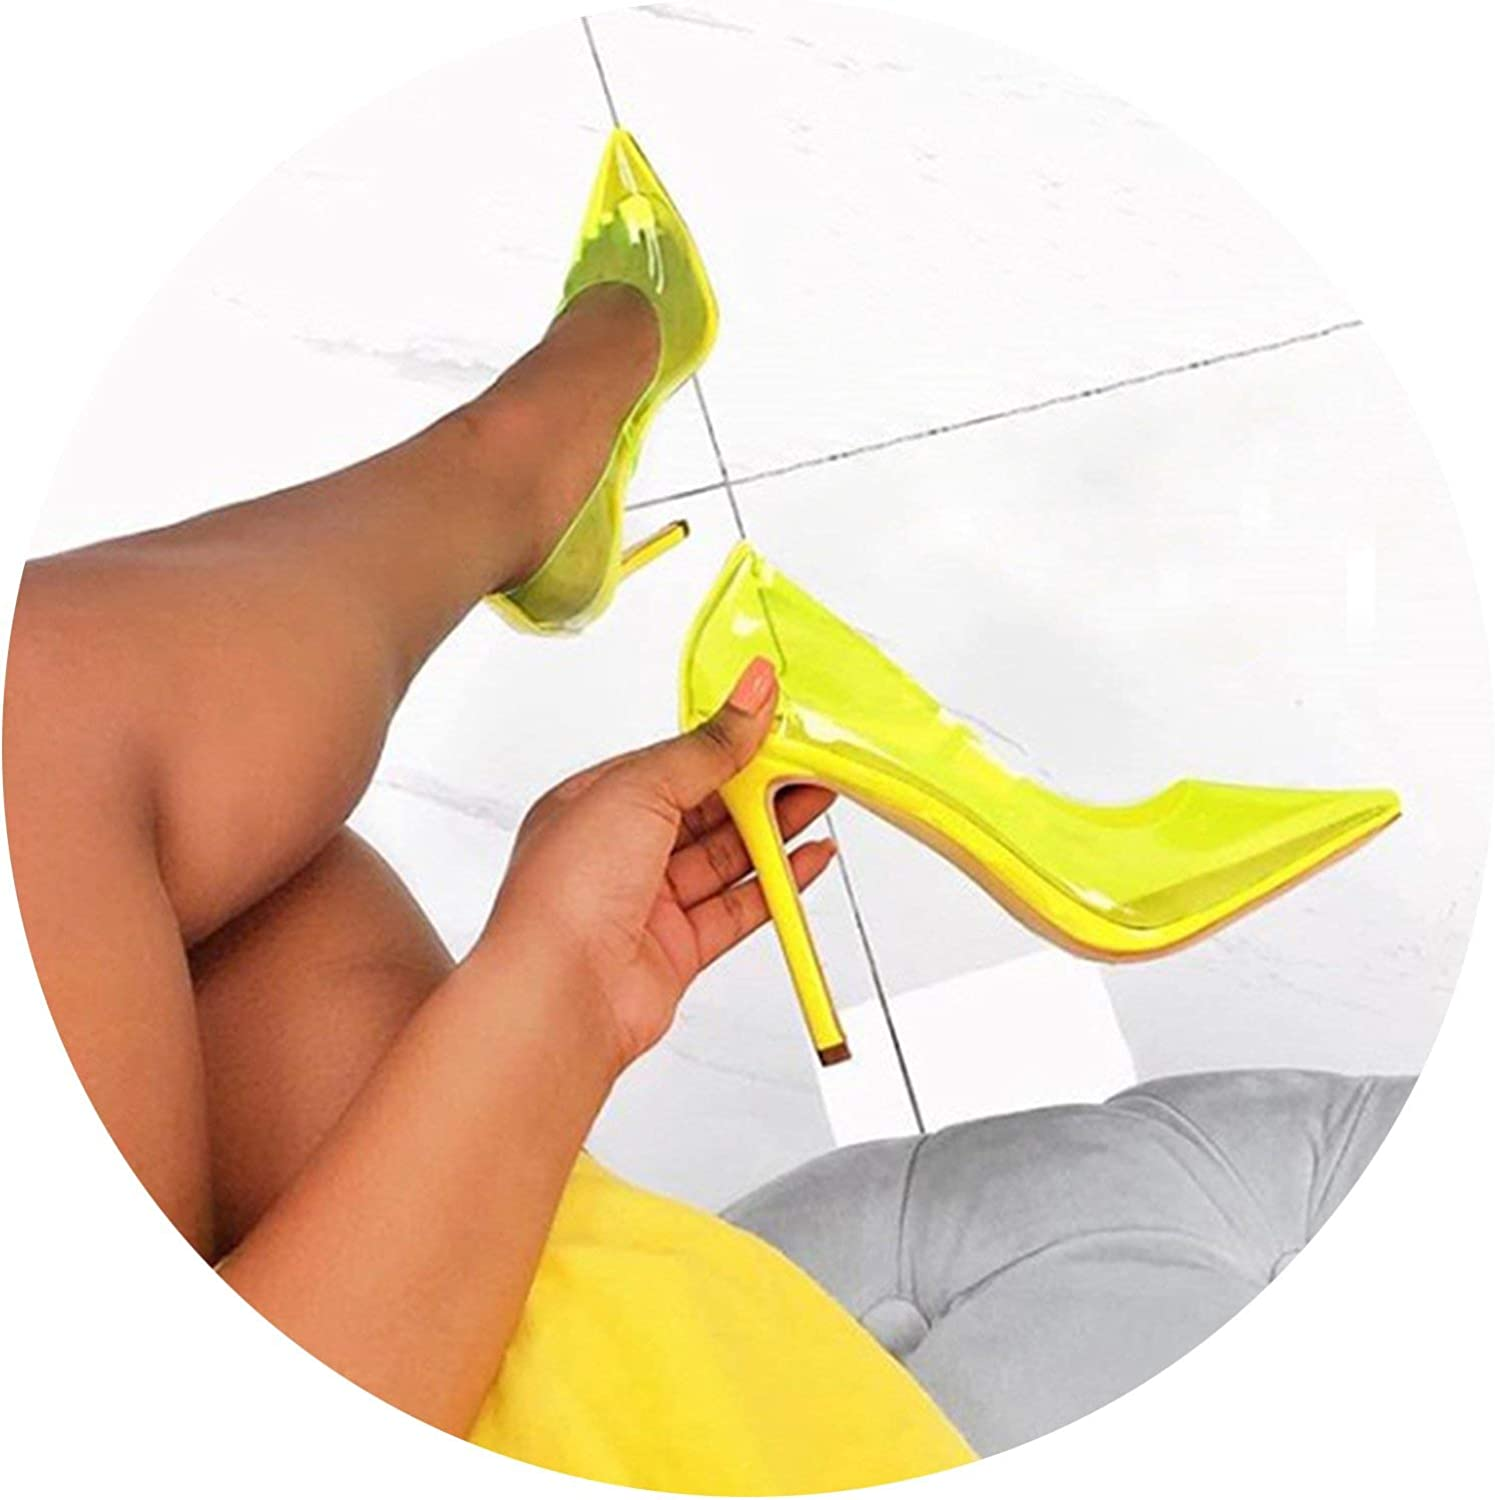 HANBINGPO Size 35-40 New Clear PVC Pointed Toe High Heels Stilettos Fashion Women OL Office Dress Pumps Sexy Female Party Pumps shoes